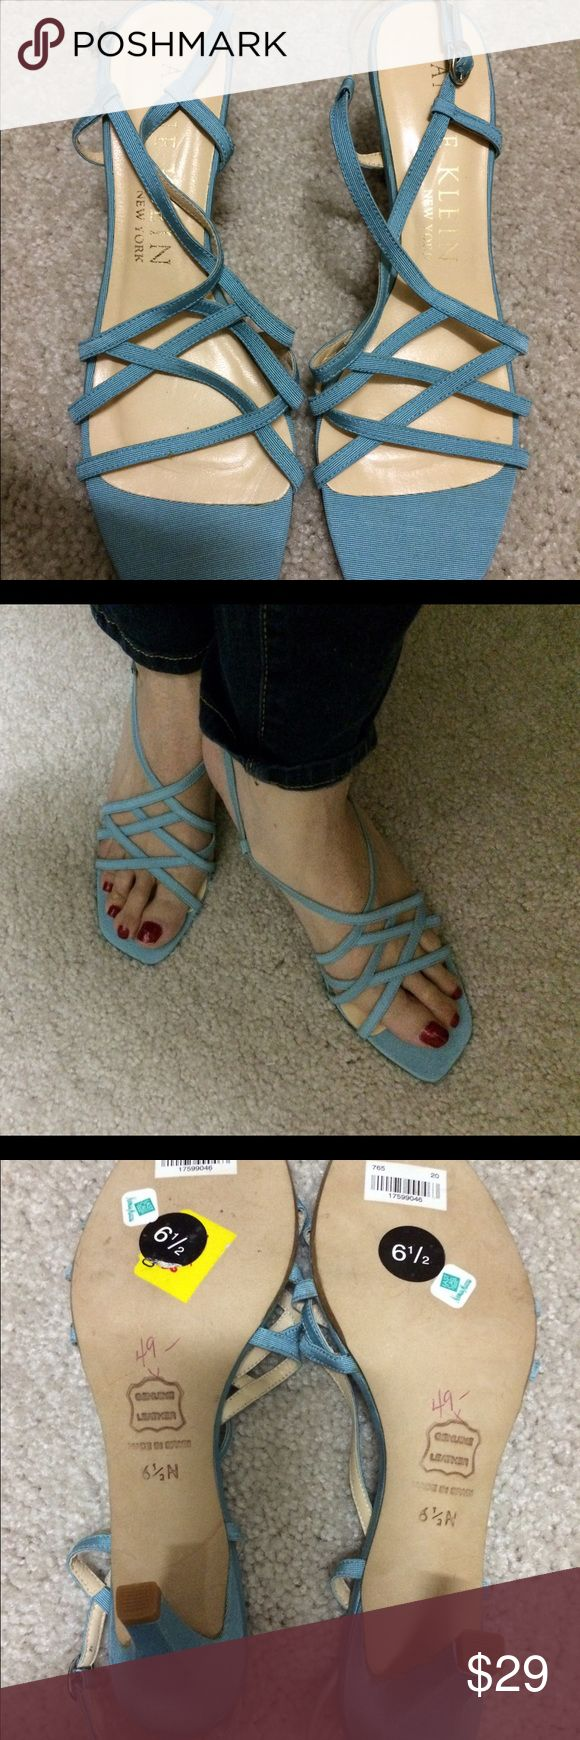 Anne Klein BRAND NEW sandals! Anne Klein New York Pale blue fabric strappy sandals, leather soles, approx 2.5 inches tall, Brand New, from Neiman Marcus. Anne Klein Shoes Sandals